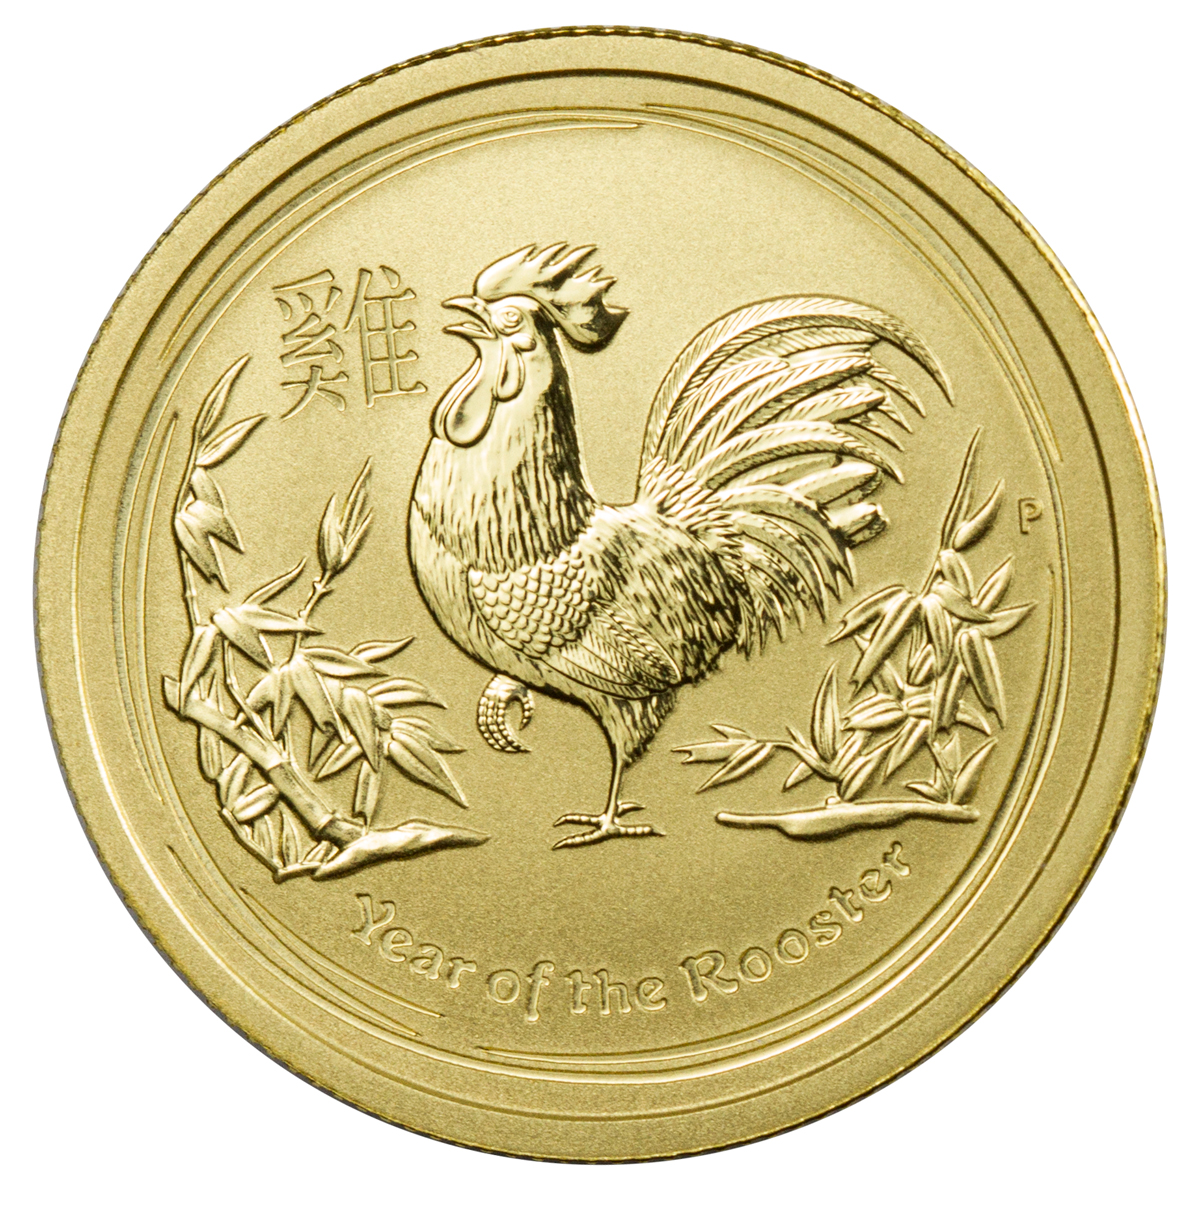 2017-P Australia Year of the Rooster 1/4 oz Gold Lunar (Series 2) $25 Coin GEM BU Original Mint Capsule